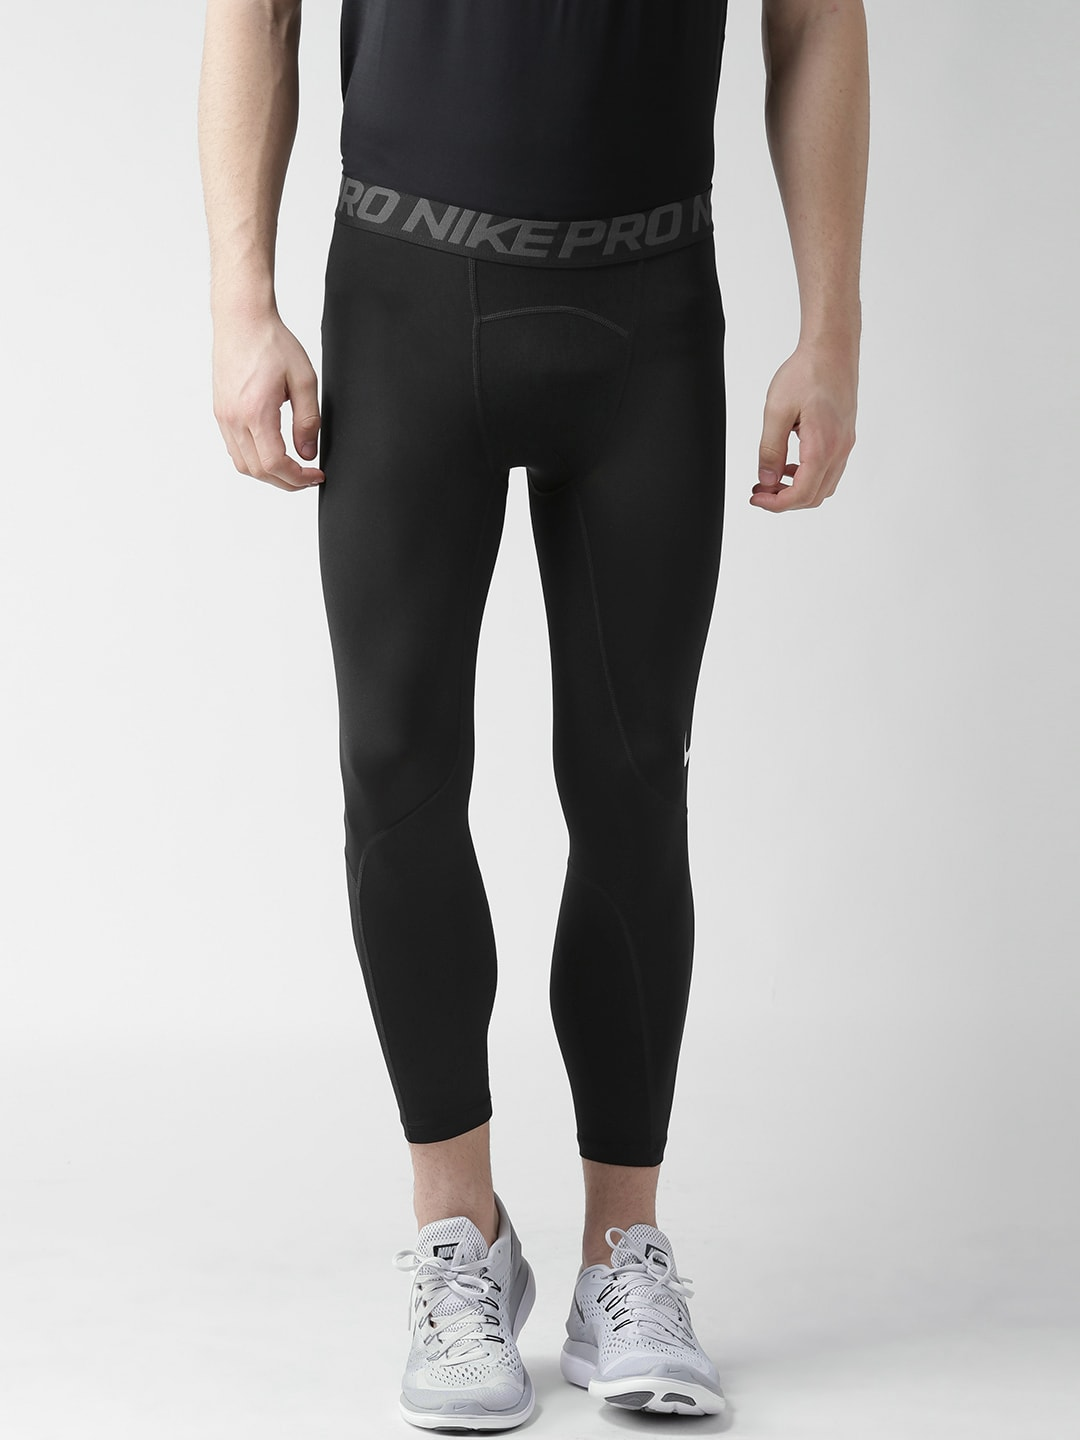 affedf1b241 Nike Pro Fit - Buy Nike Pro Fit online in India